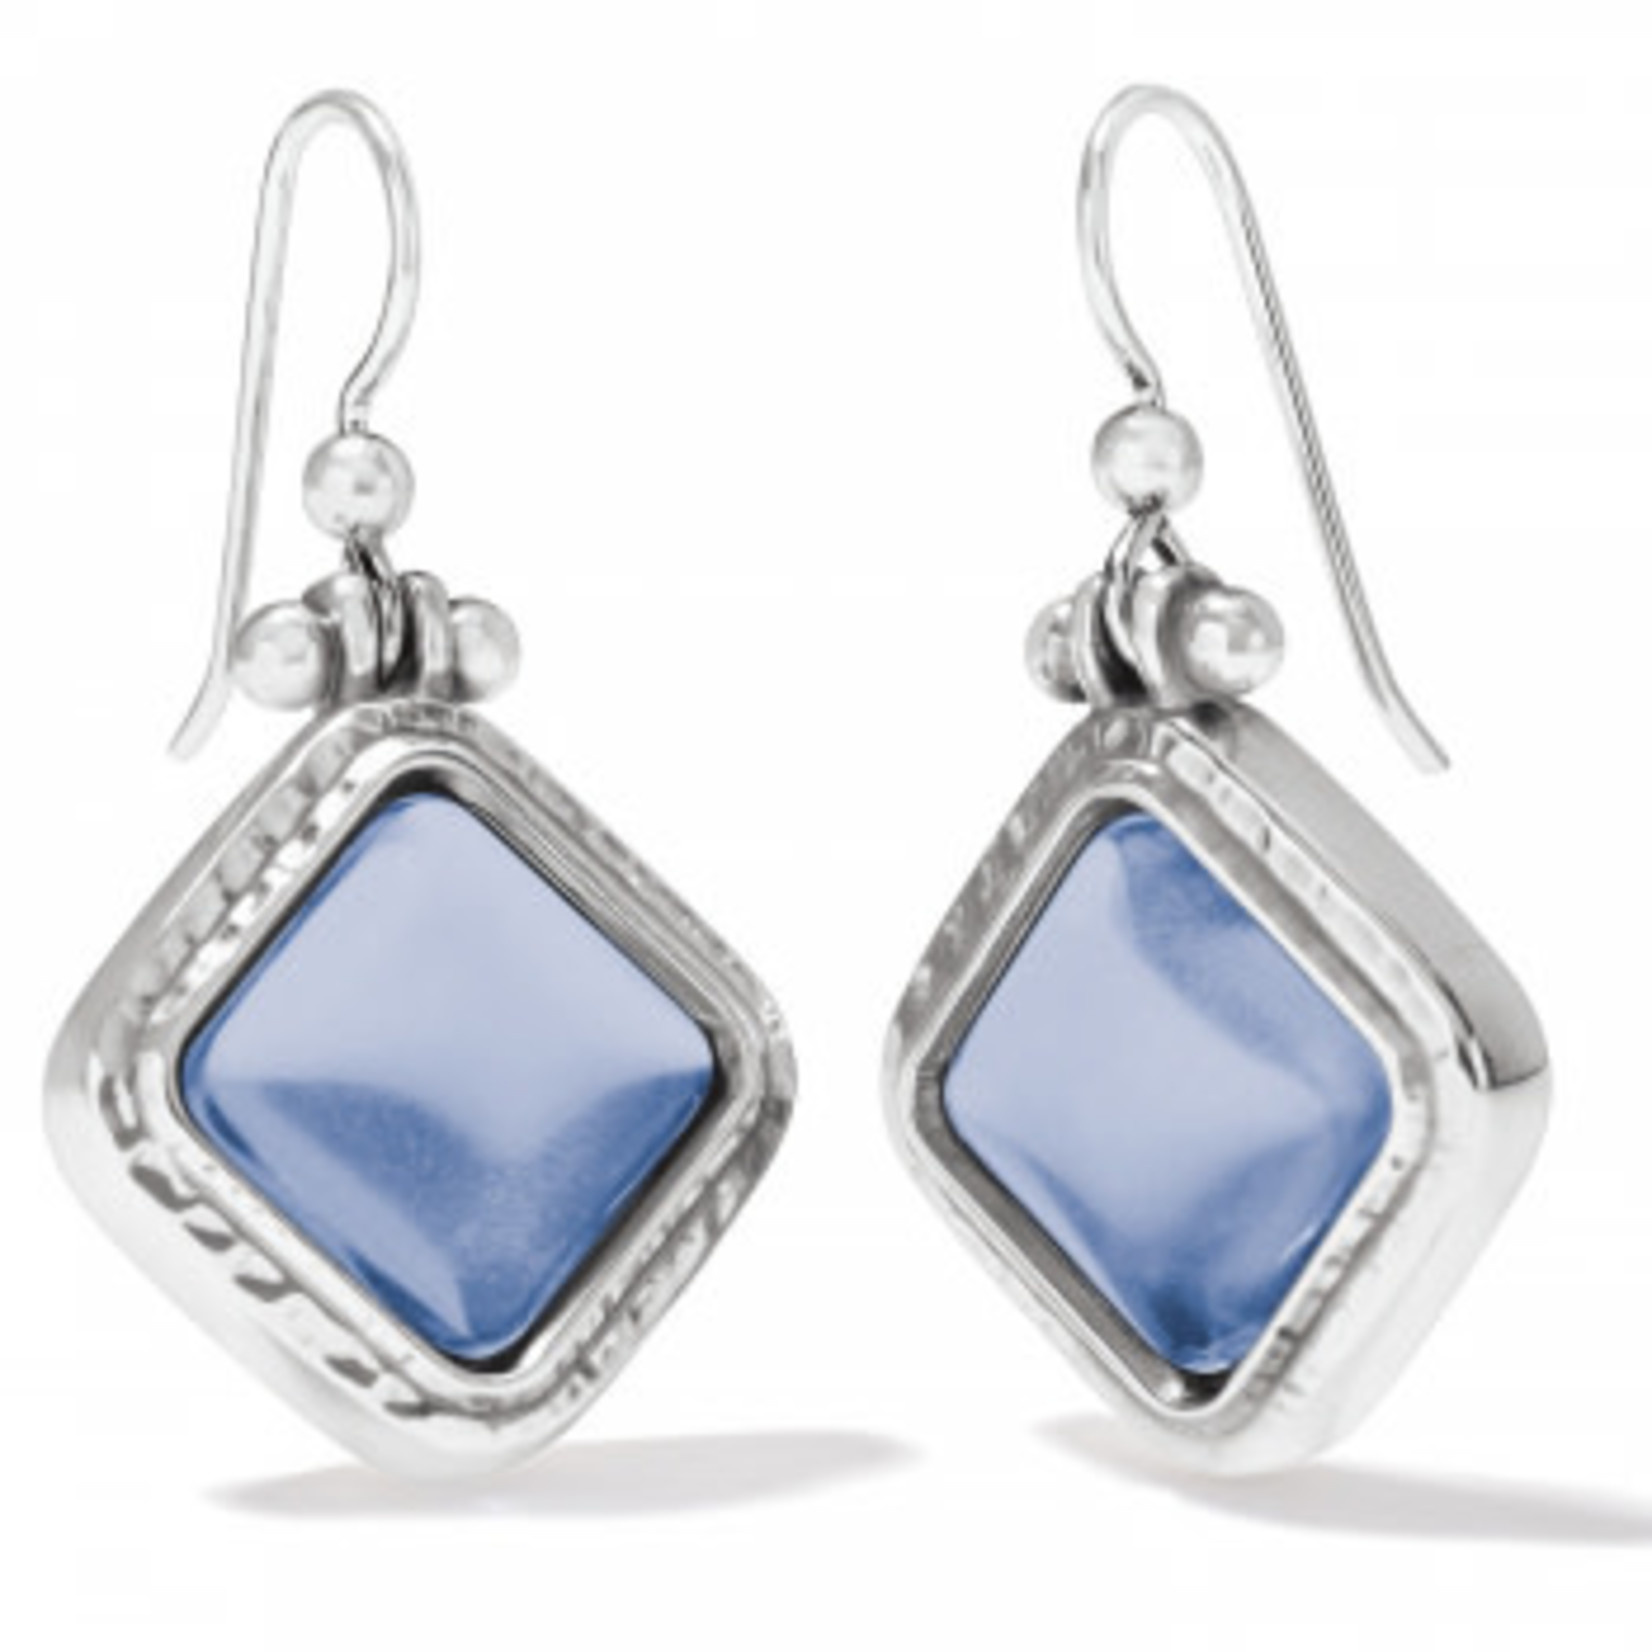 Brighton Jules Sapphire French Wr Earrings